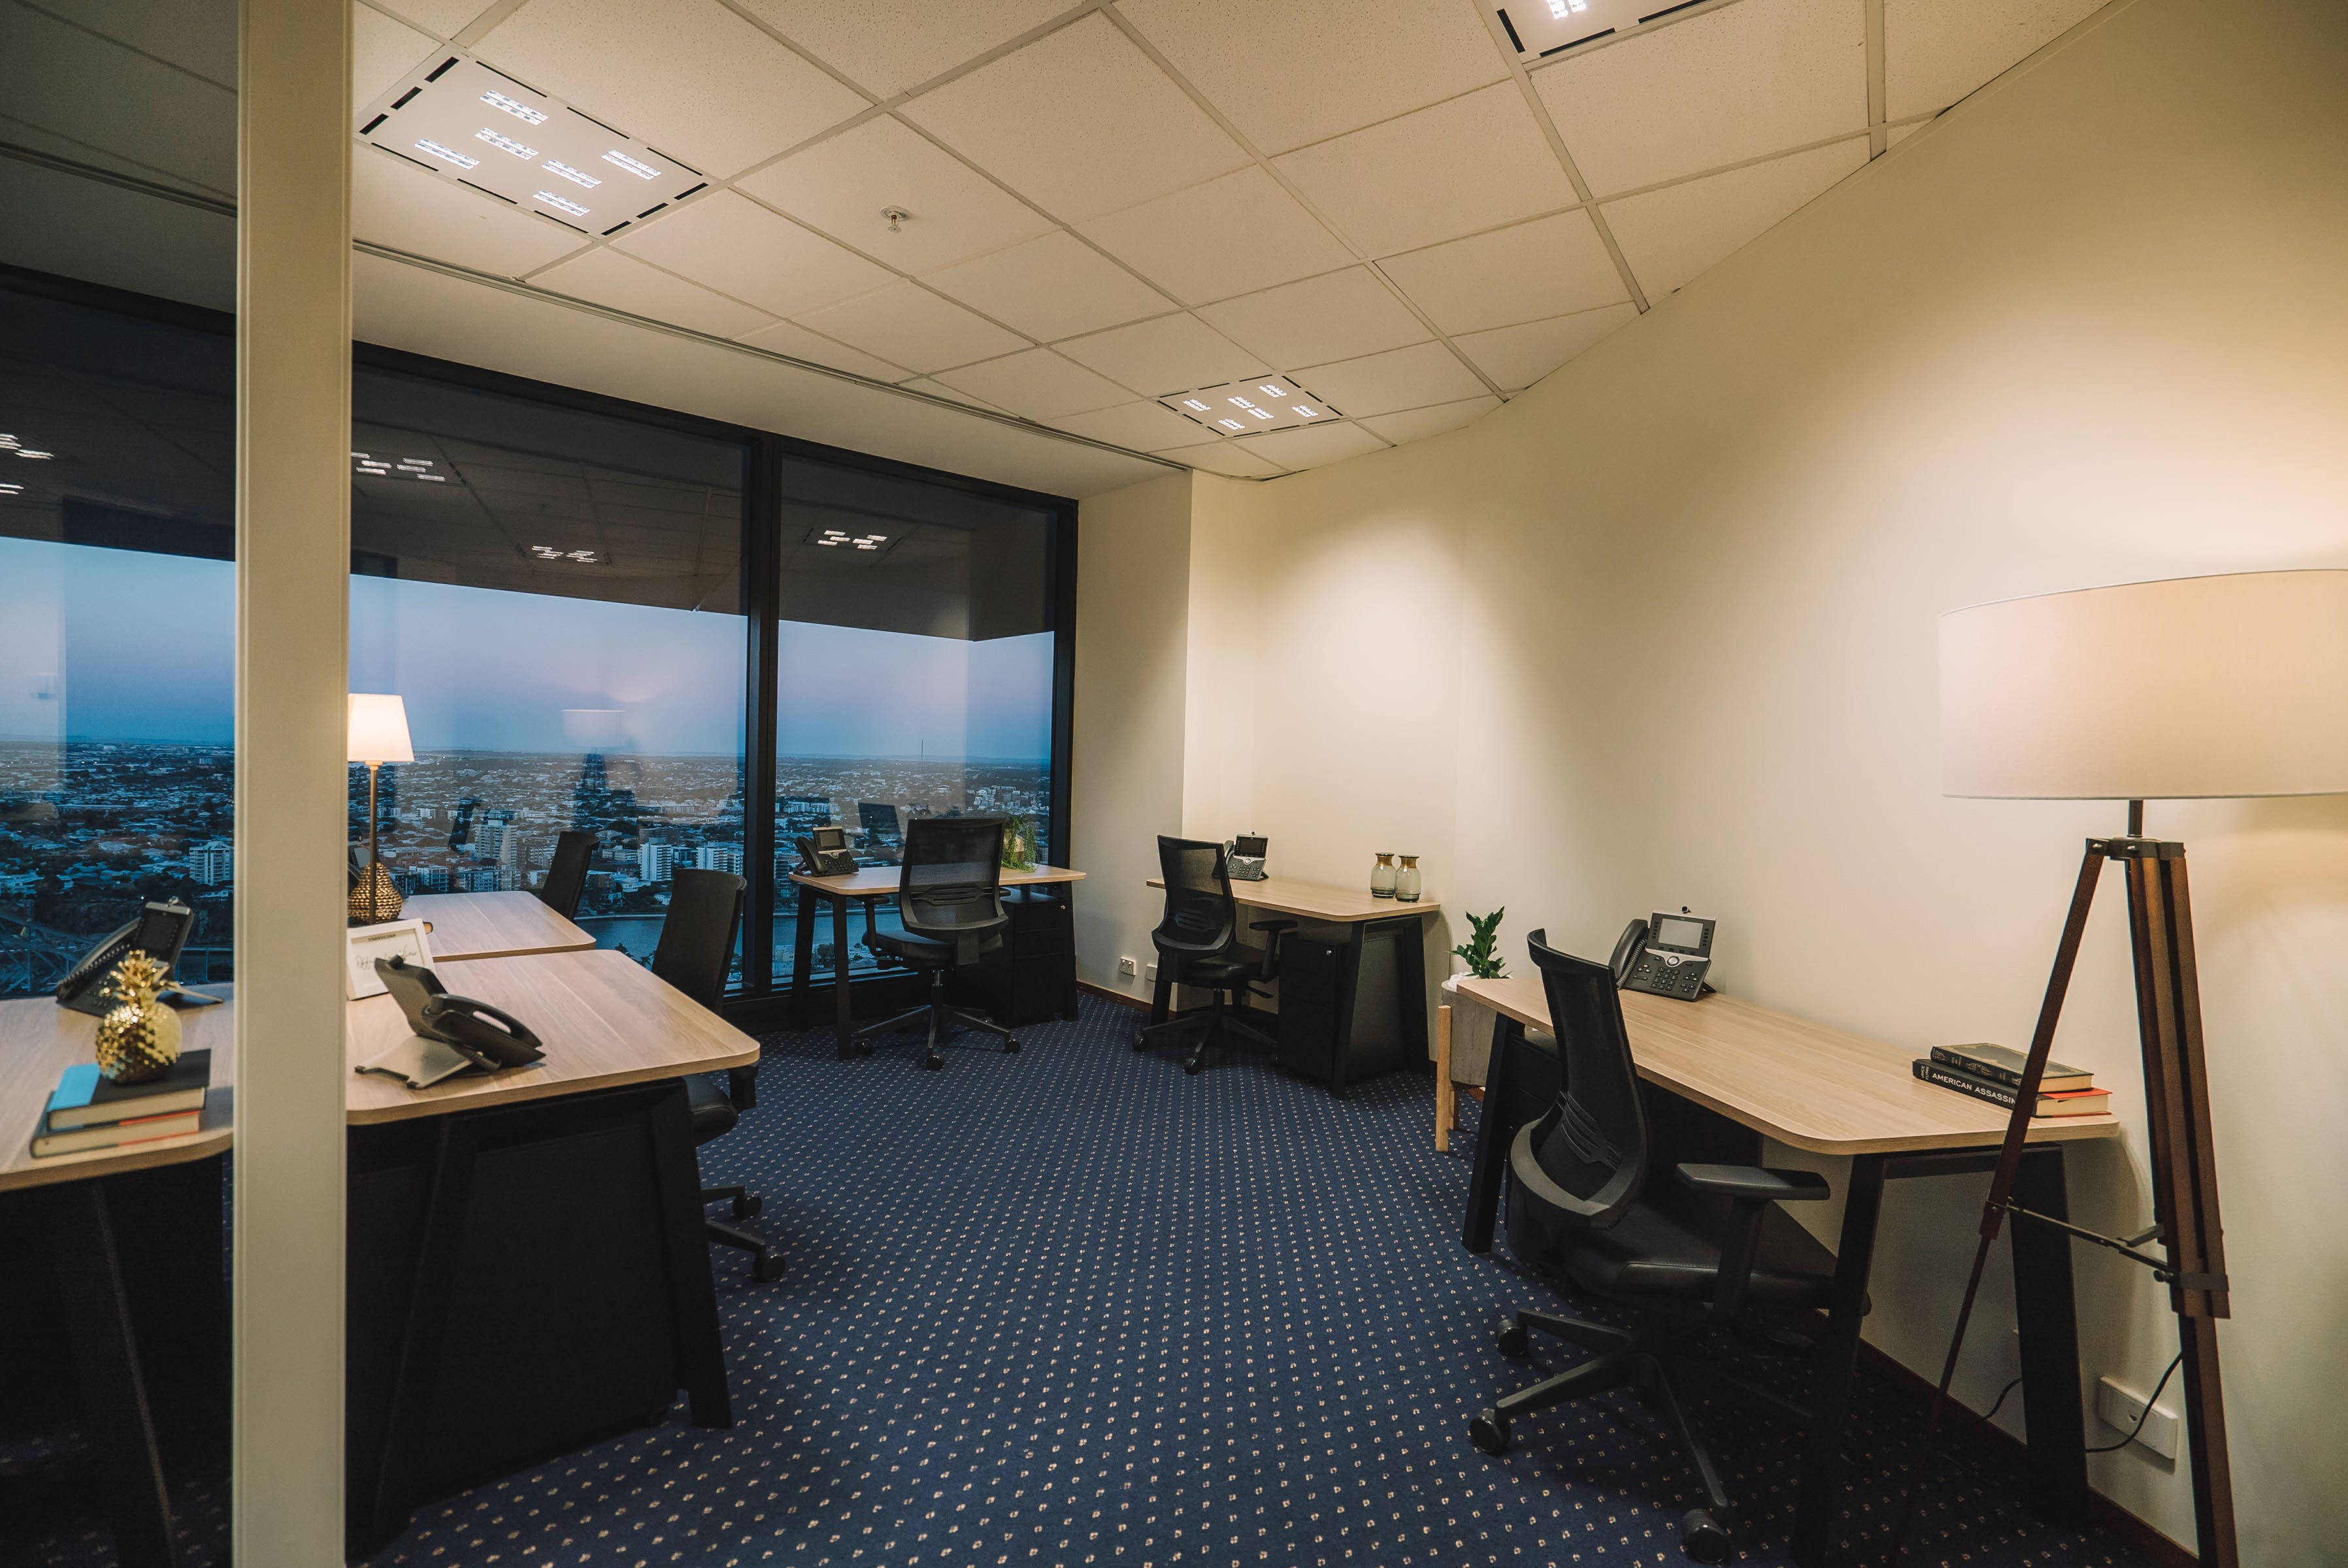 Private Meeting Room for 8, meeting room at The Realm, image 8